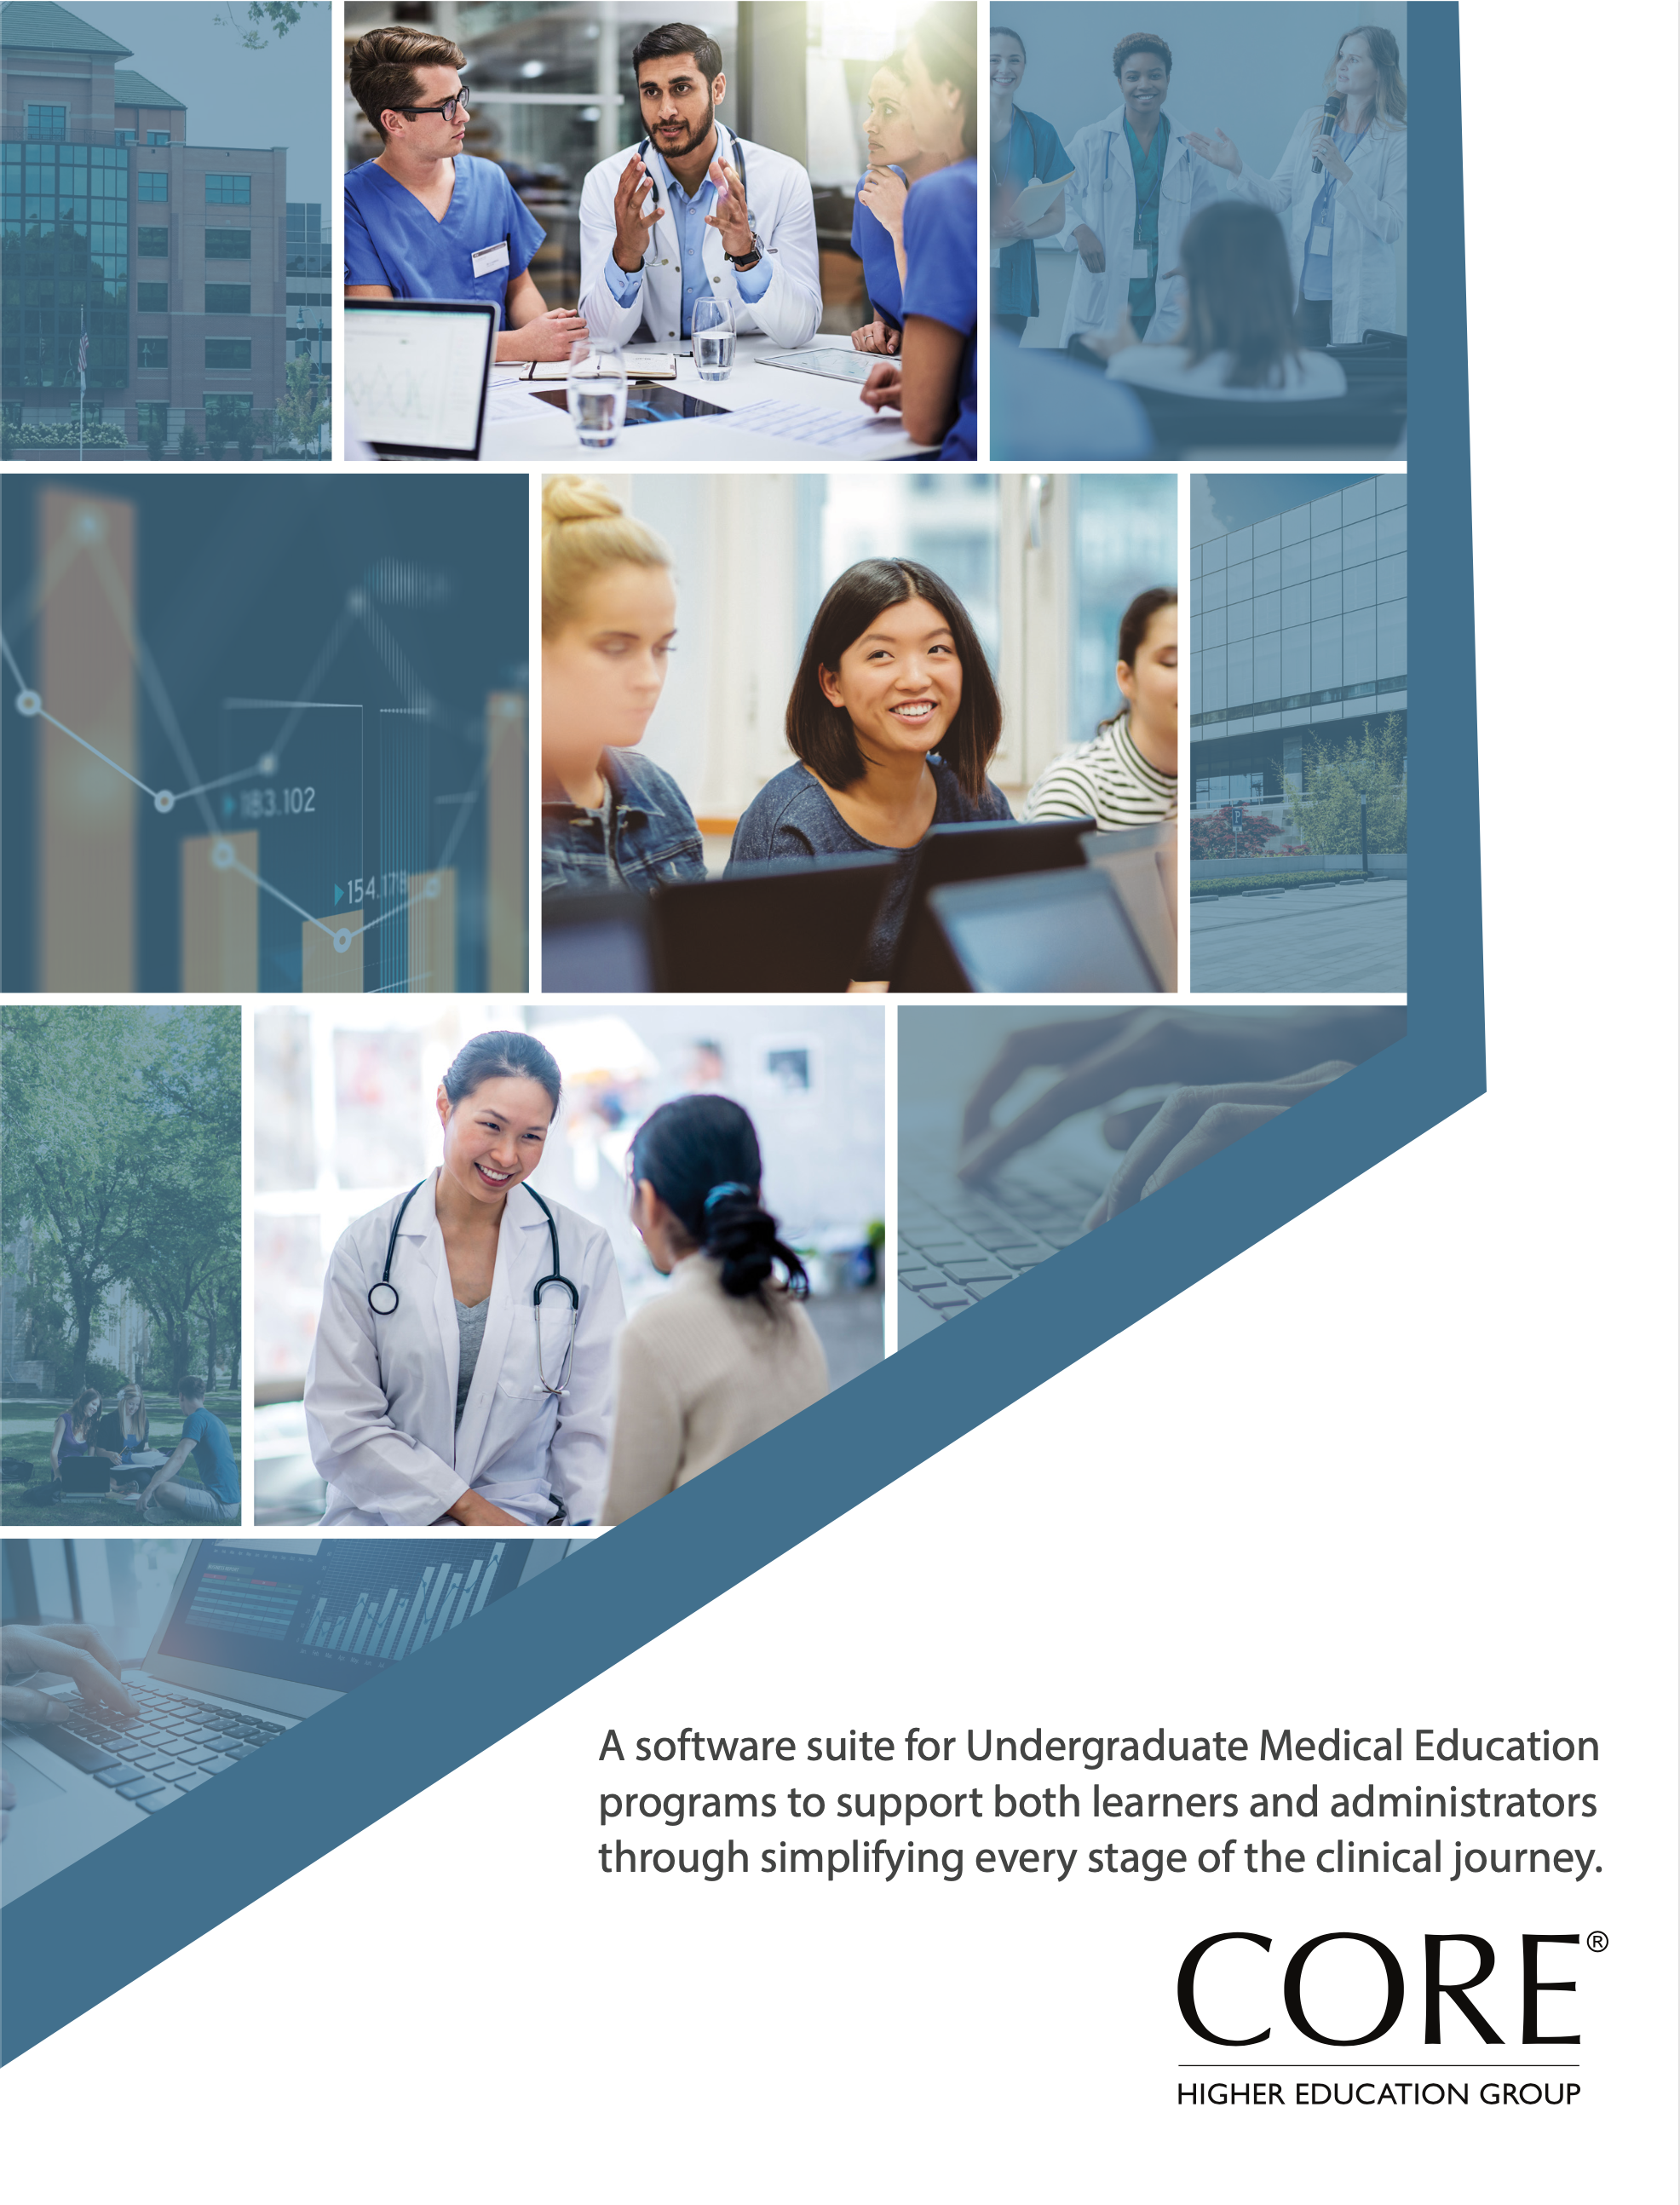 CORE Product Guide for Undergraduate Medical Education